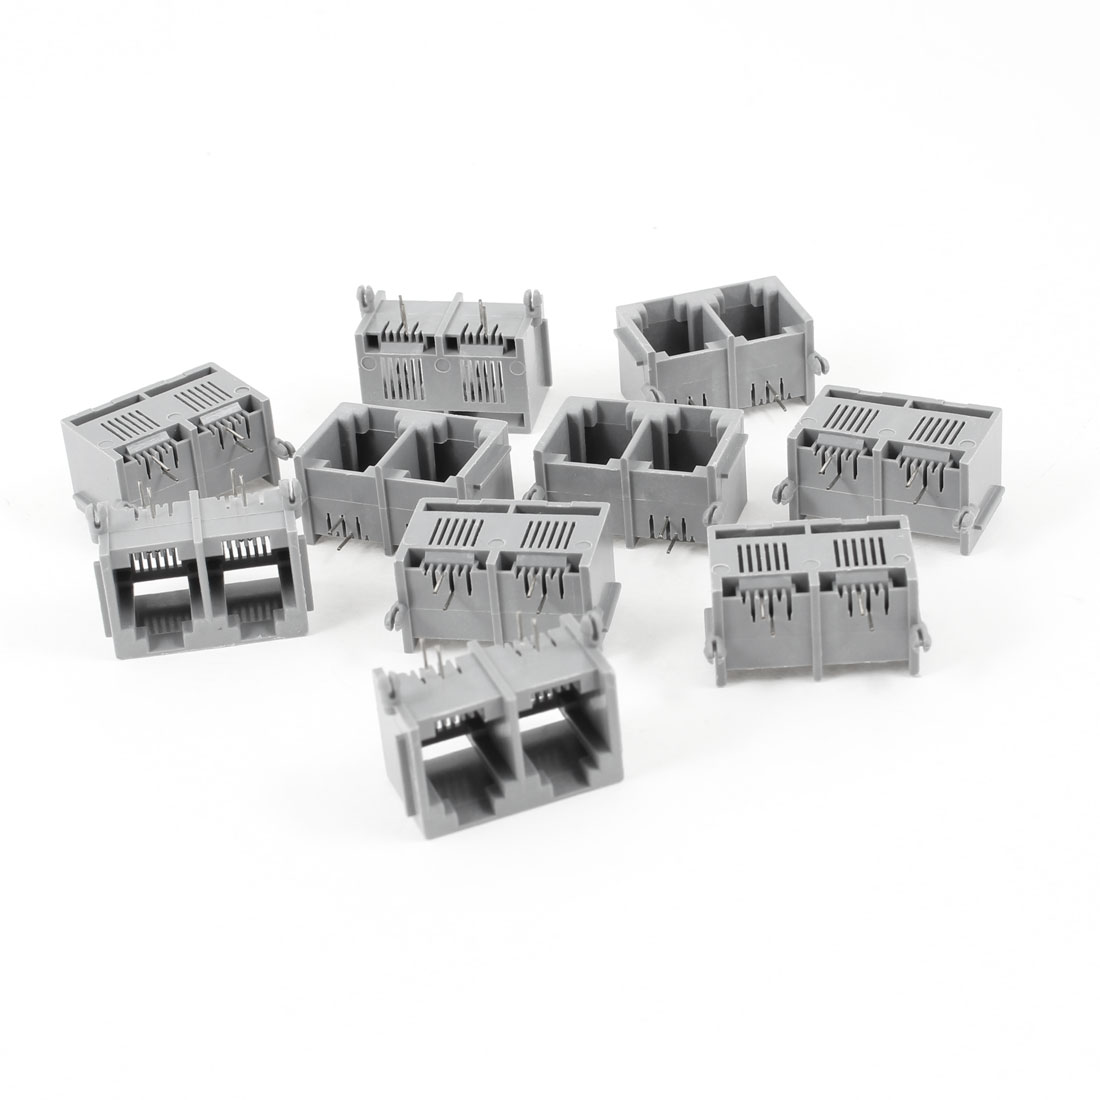 10 Pcs Unshielded 2-Port RJ11 6P2C Network Modular PCB Connector Jacks Gray